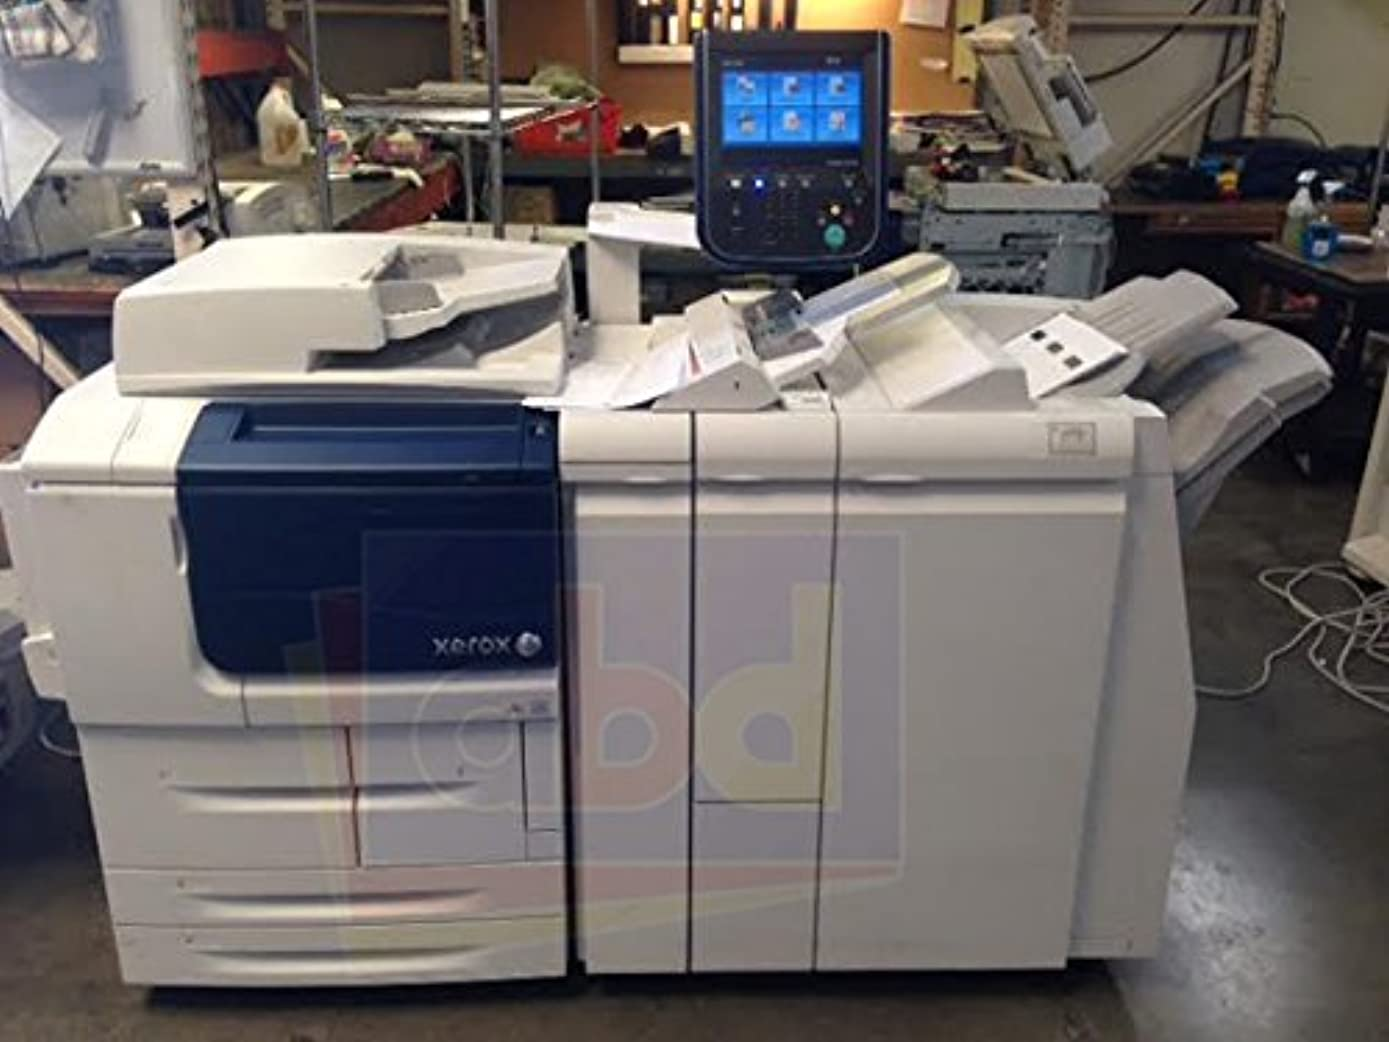 Xerox D110 Monochrome Digital Laser Production Printer/Copier - 110ppm, Copy, Print, Scan, MLA Stapling Finisher with 2/3-Hole Punch (Renewed)